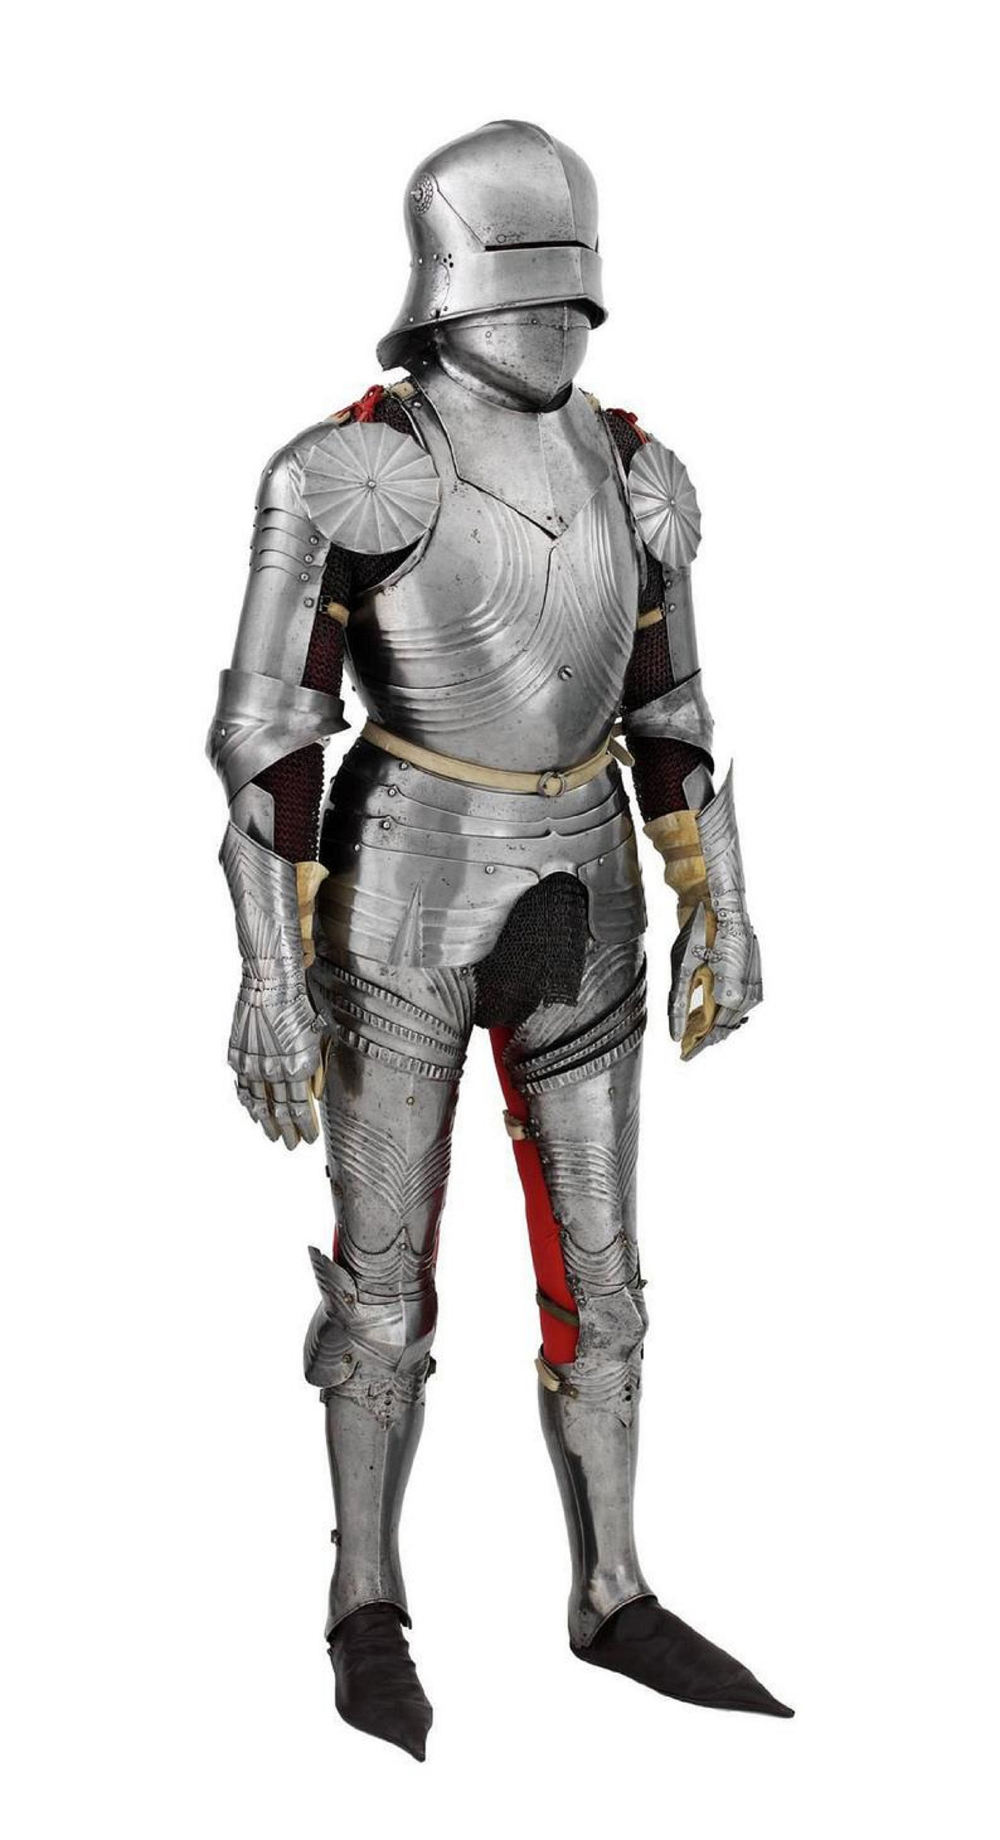 Medieval German Armour Suit Breastplate Pauldrons Bracers Warrior Larp Costume For Cosplay Costume Suit Of Armor Knight Armor Pauldron